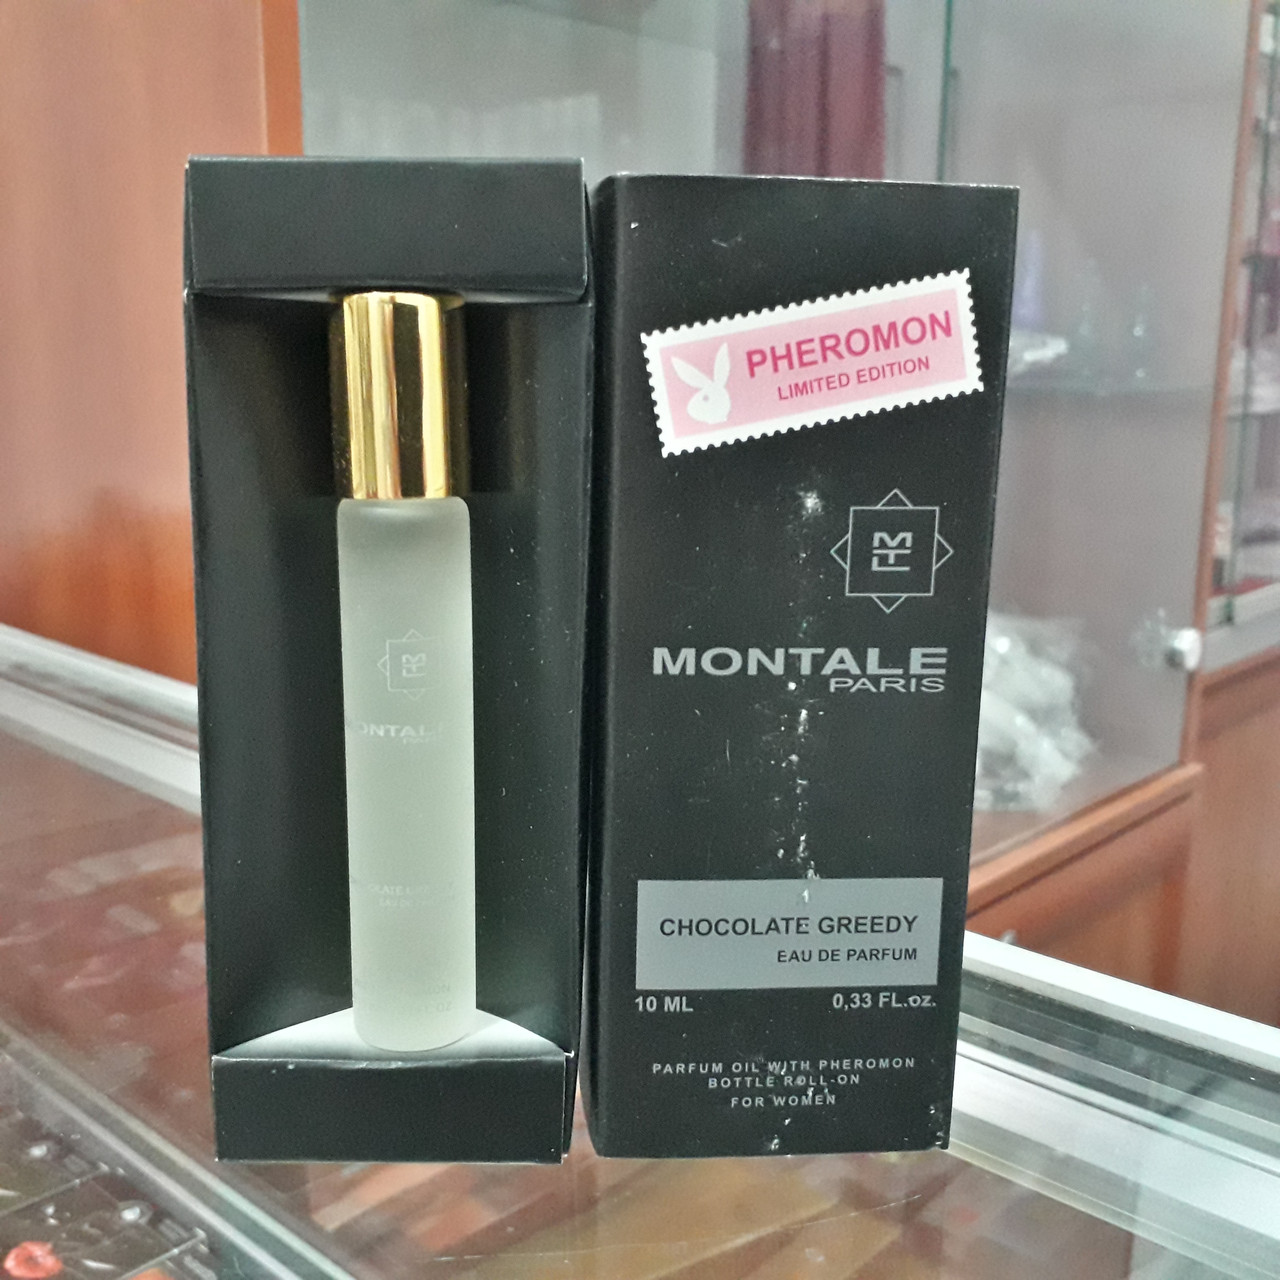 Духи с феромонами Montale Chocolate Greedy, 10ml.